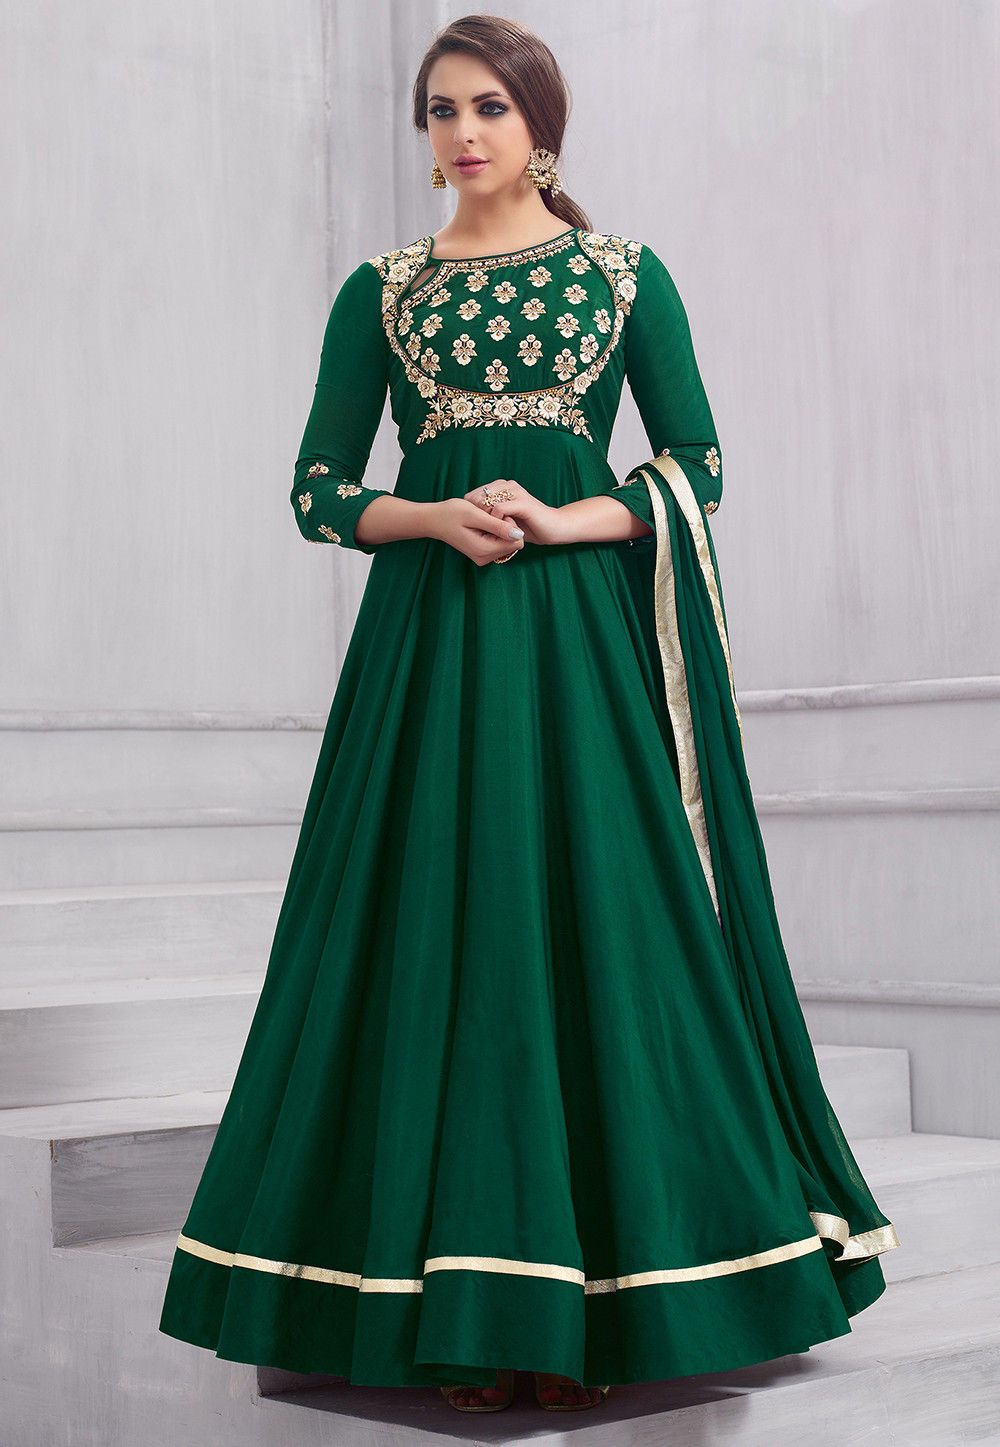 96784602c8 Buy Embroidered Taffeta Silk Abaya Style Suit in Dark Green online, Item  code: KBNQ239, Color: Green, Occasion: Wedding, Work: Contemporary, Resham,  ...